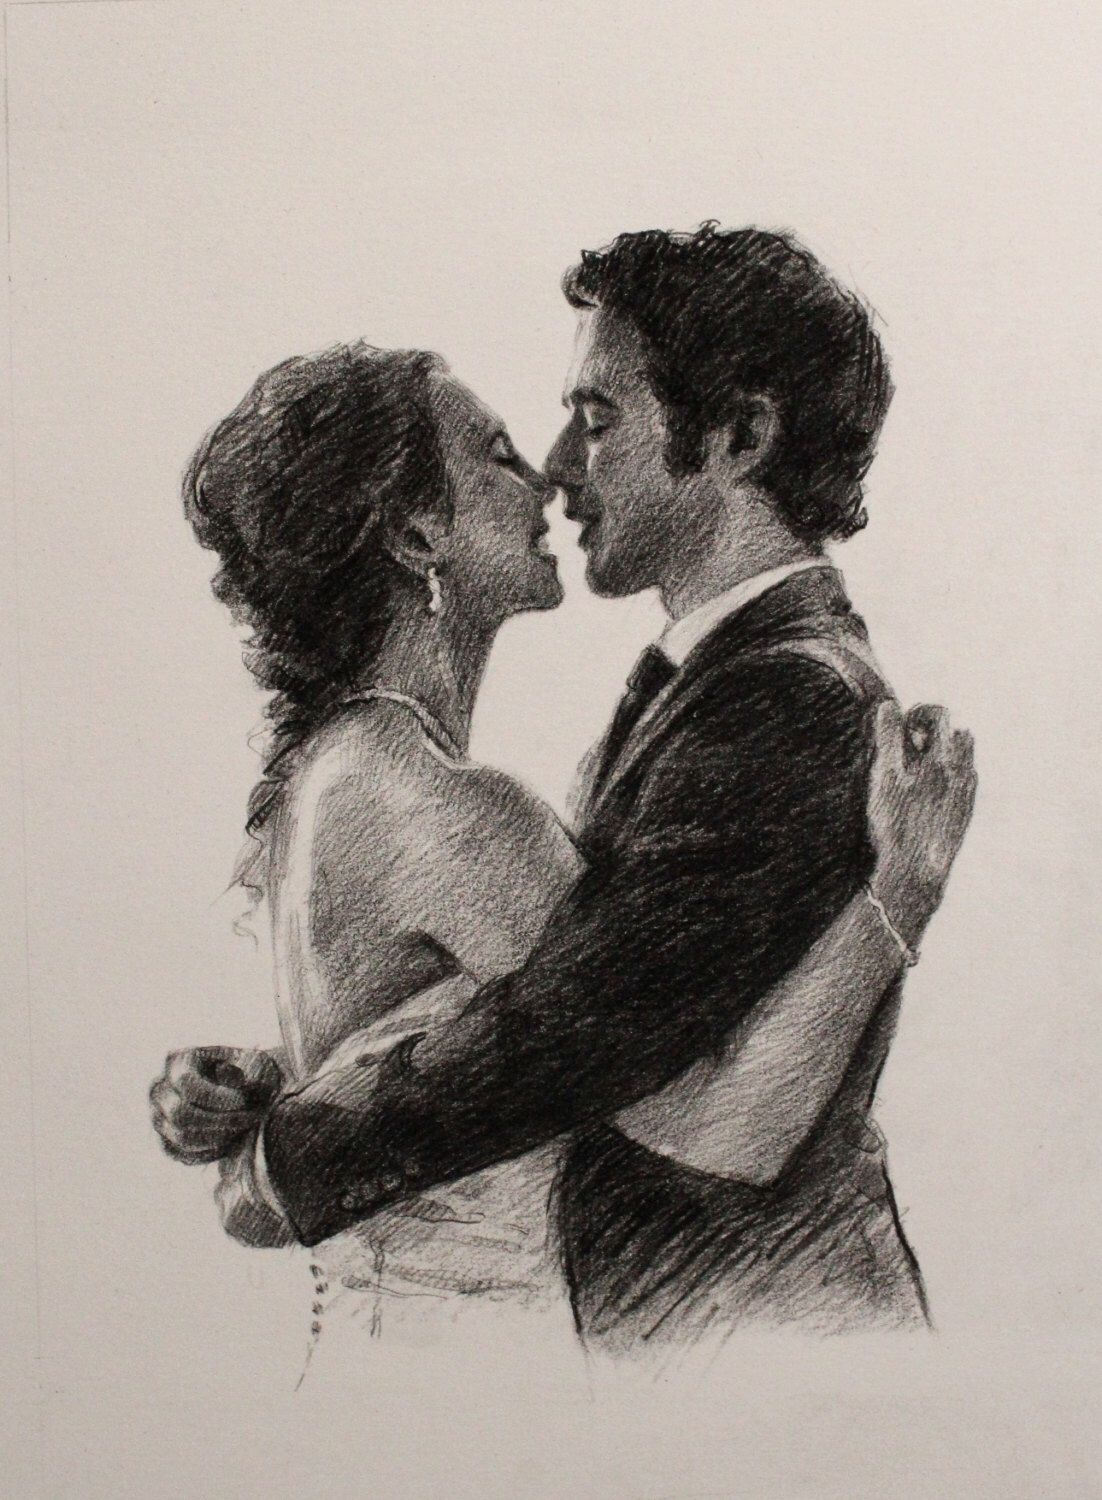 Drawing charcoal hustband gift fiancé gift mens personalized gift for husband gift for fiancé art gift by OliFineArt on Etsy https://www.etsy.com/listing/266200236/drawing-charcoal-hustband-gift-fiance